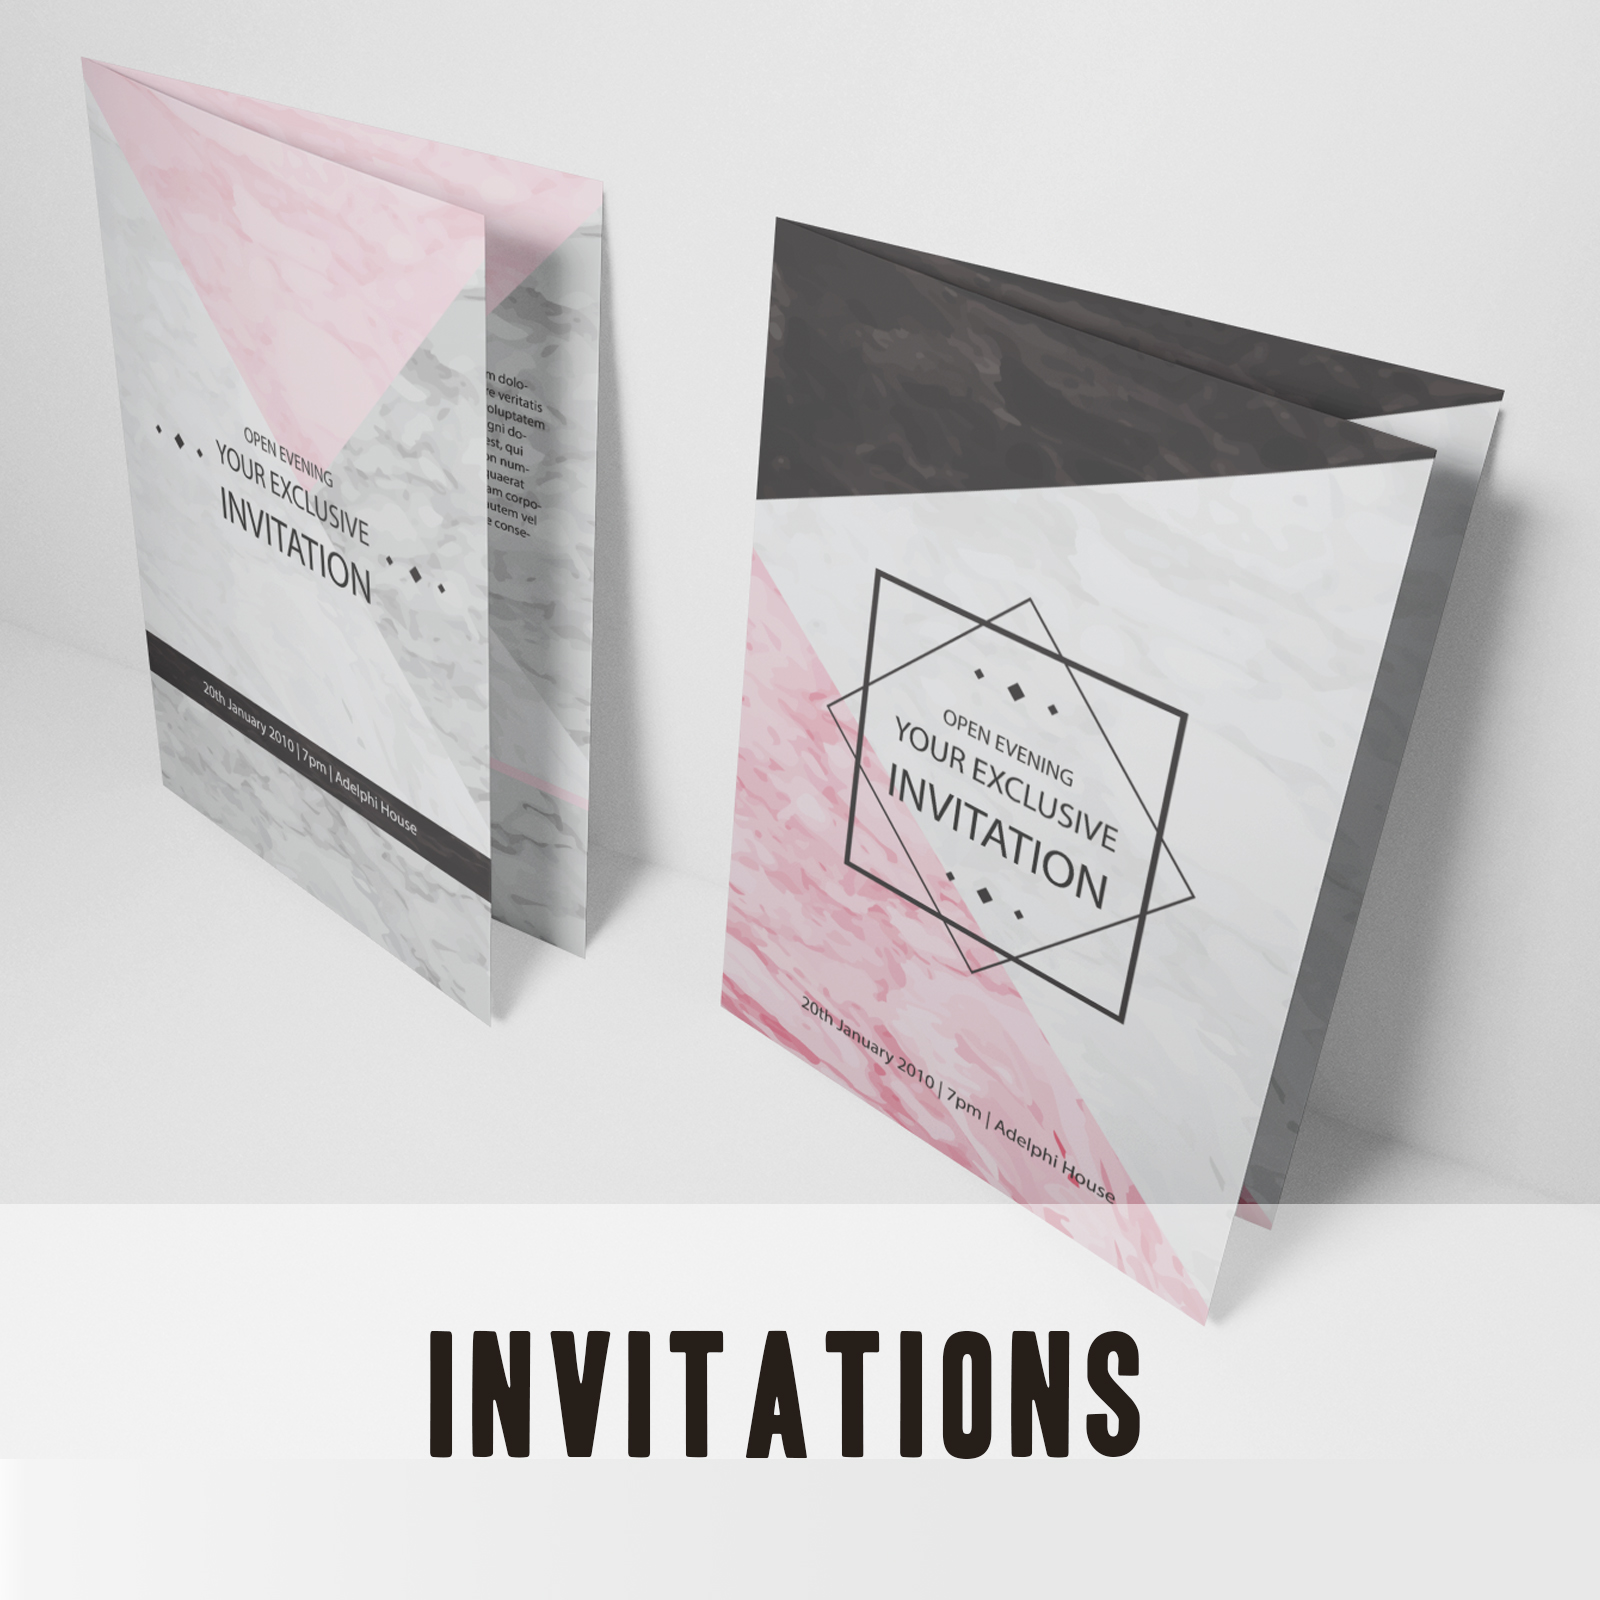 Invitations - JPEG - final - with text.jpg